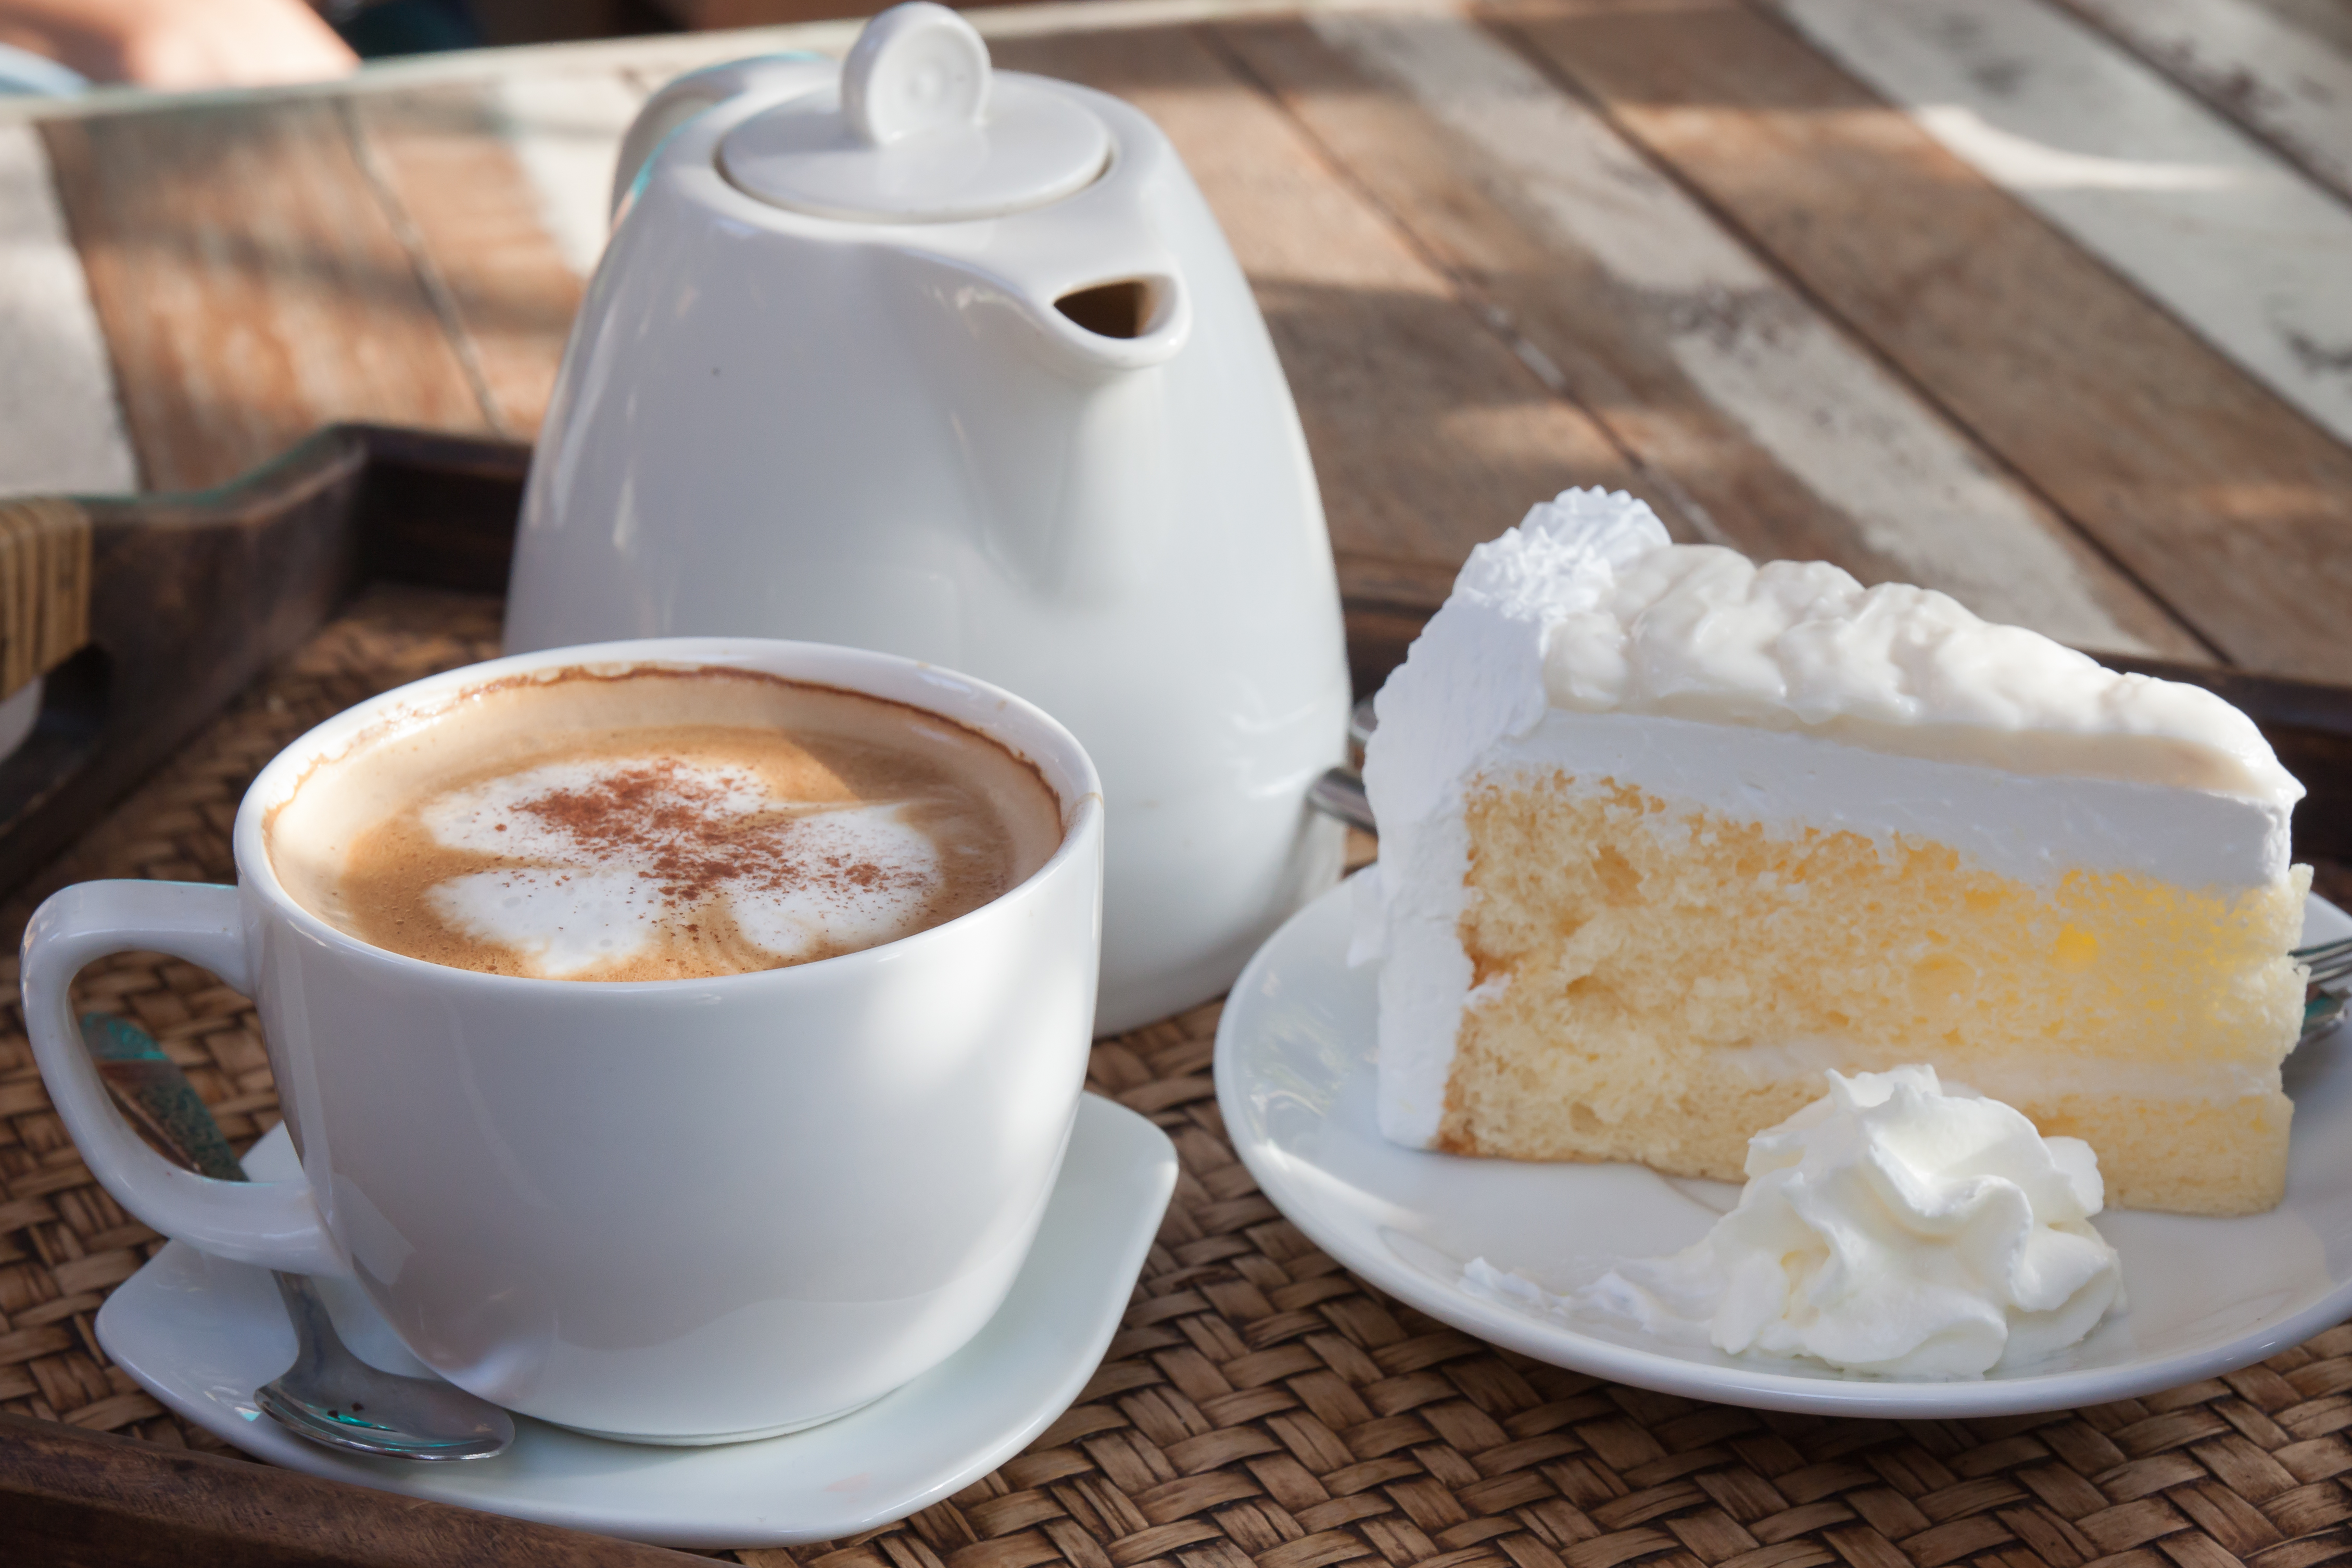 Coffee and cake are placed on a wooden table.